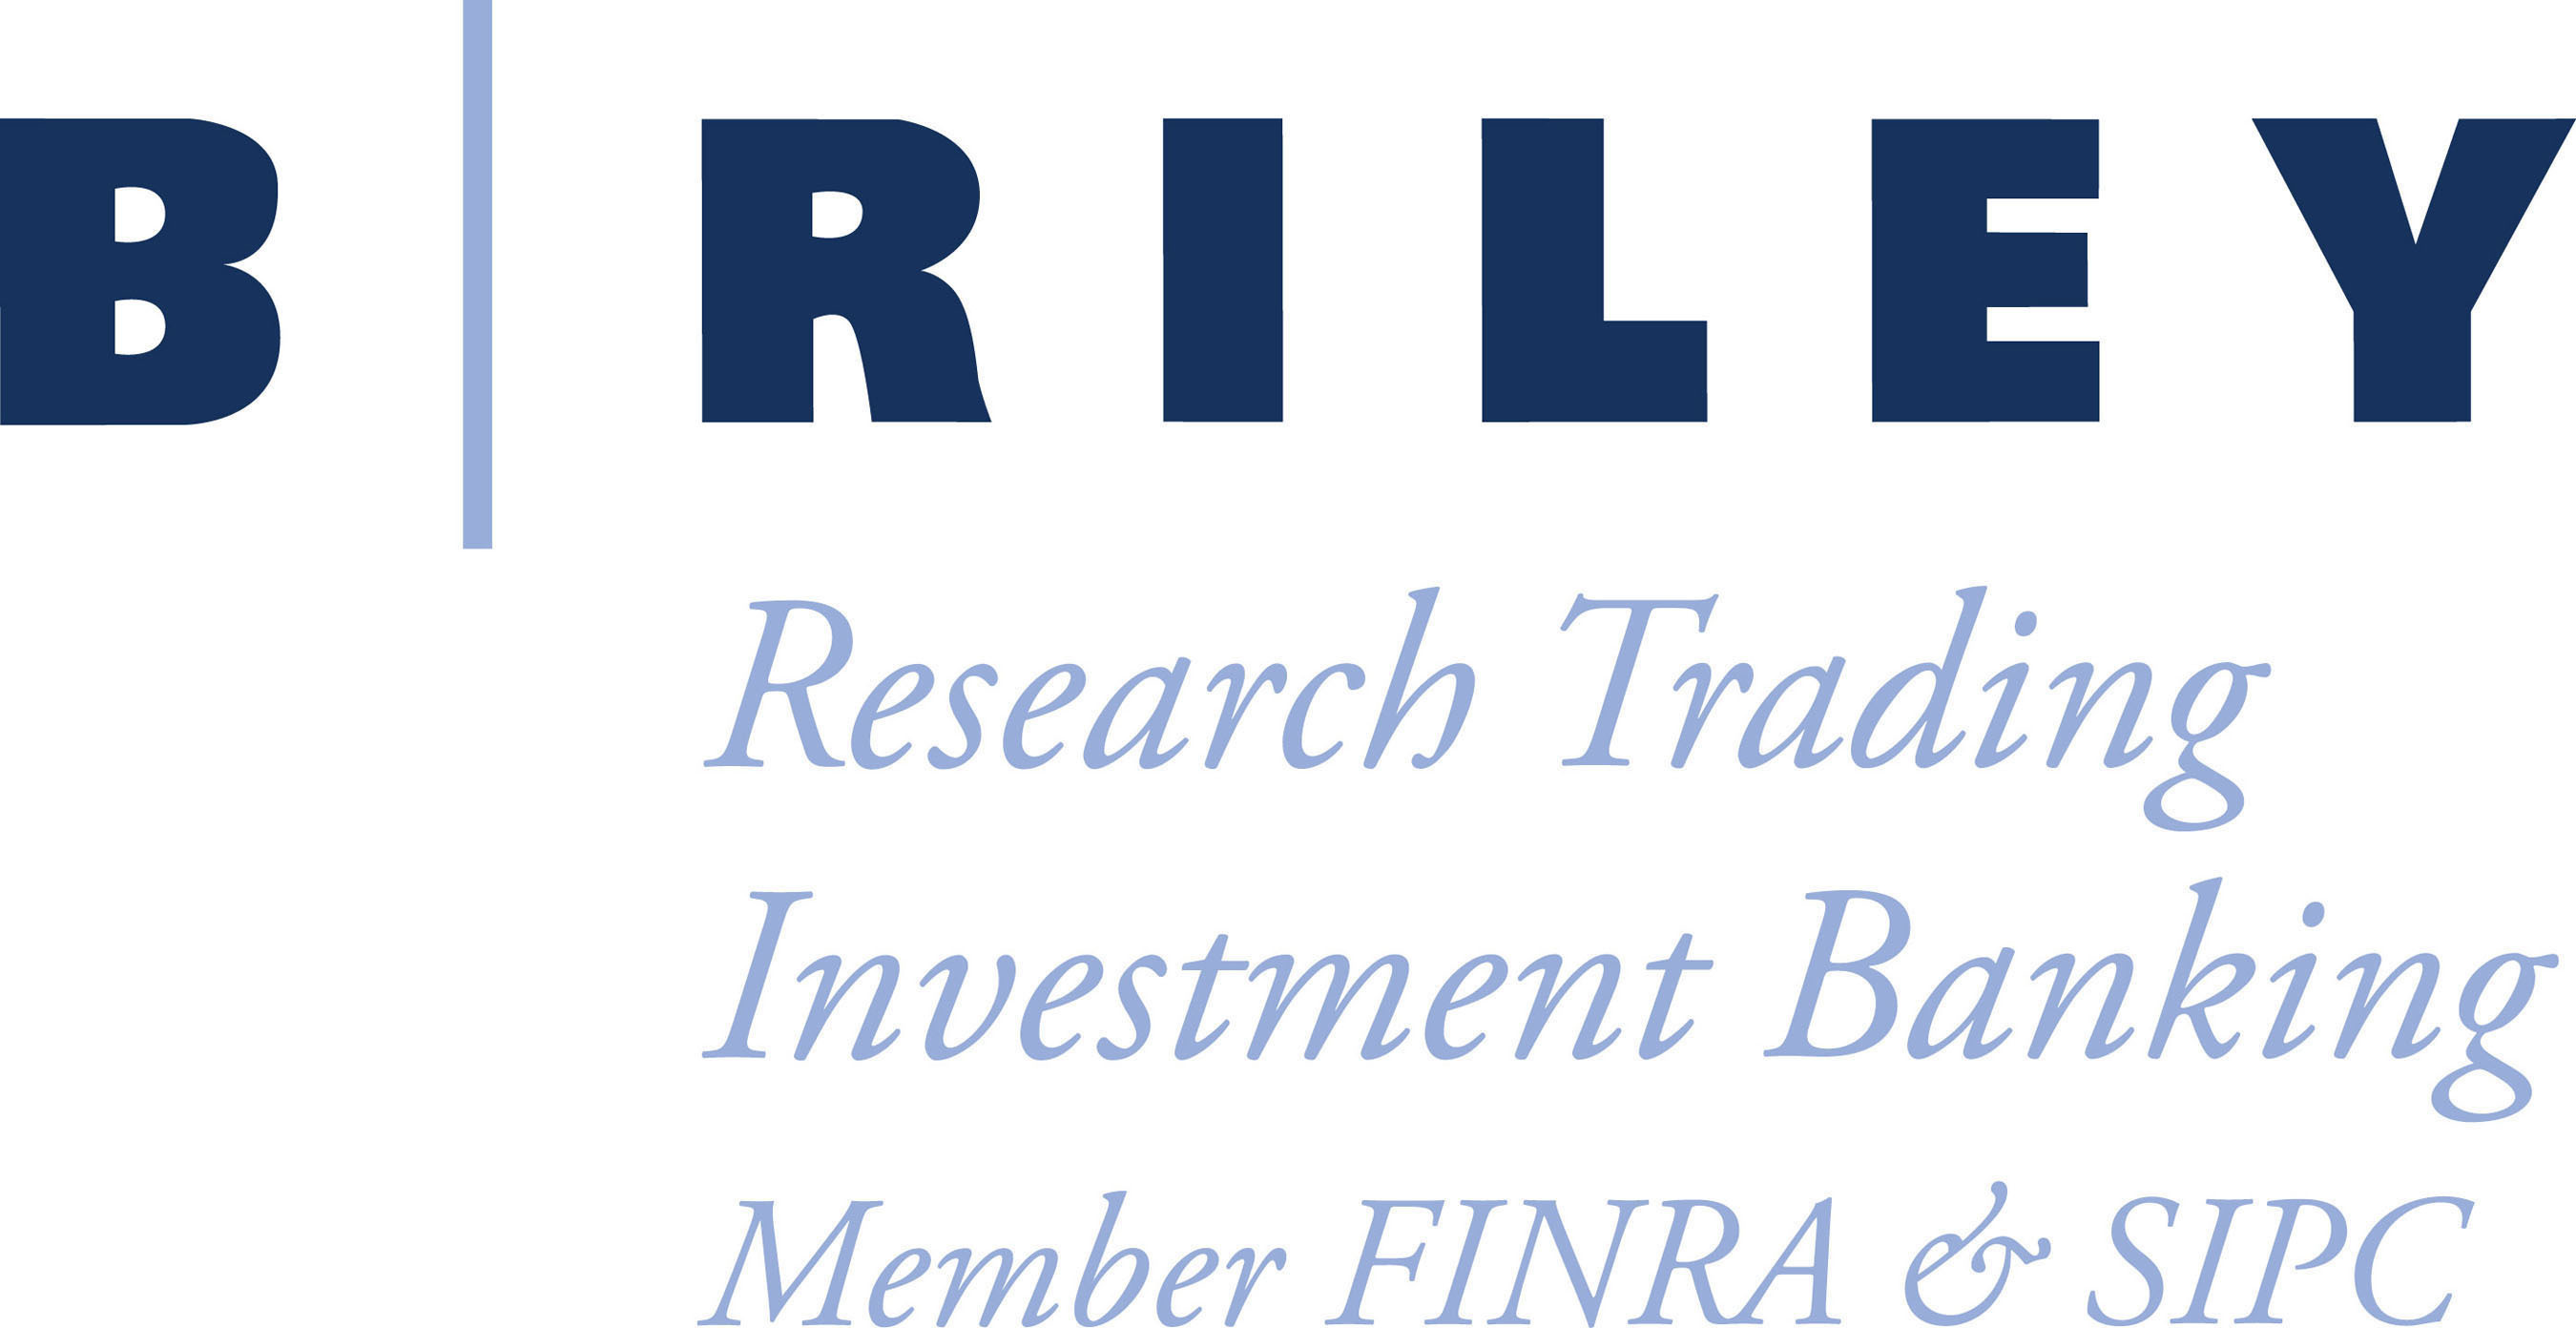 B. Riley & Co. 16th Annual Investor Conference to Feature 250+ Companies on May 12-14, 2015